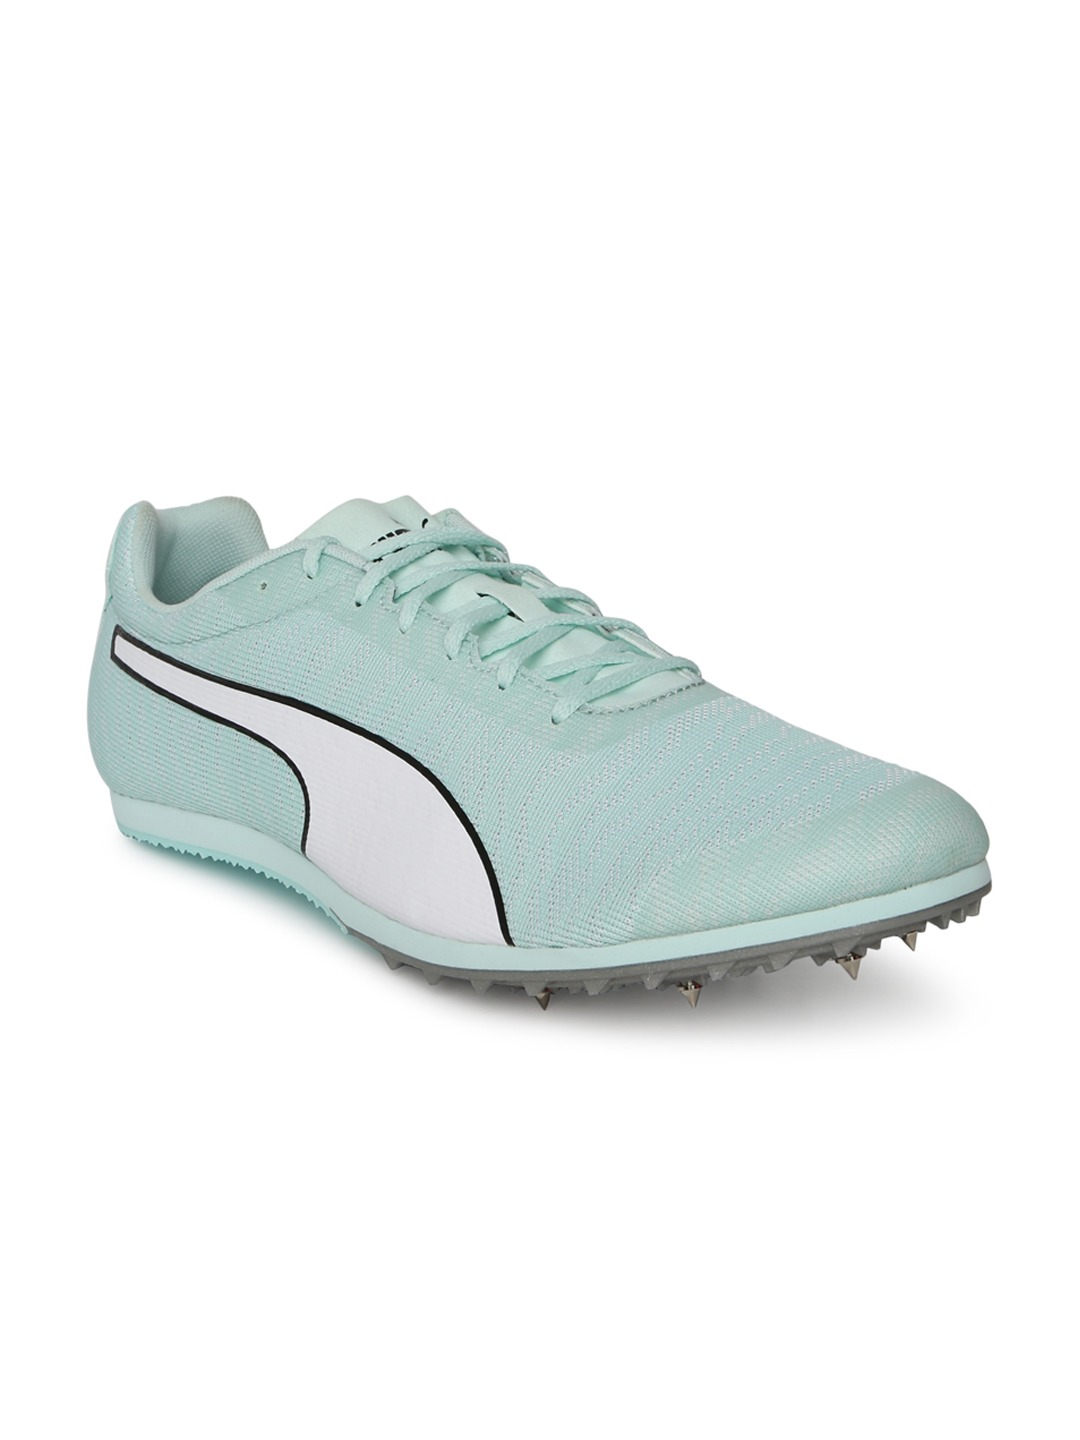 Mint Green evoSPEED Star 6 Running Shoes